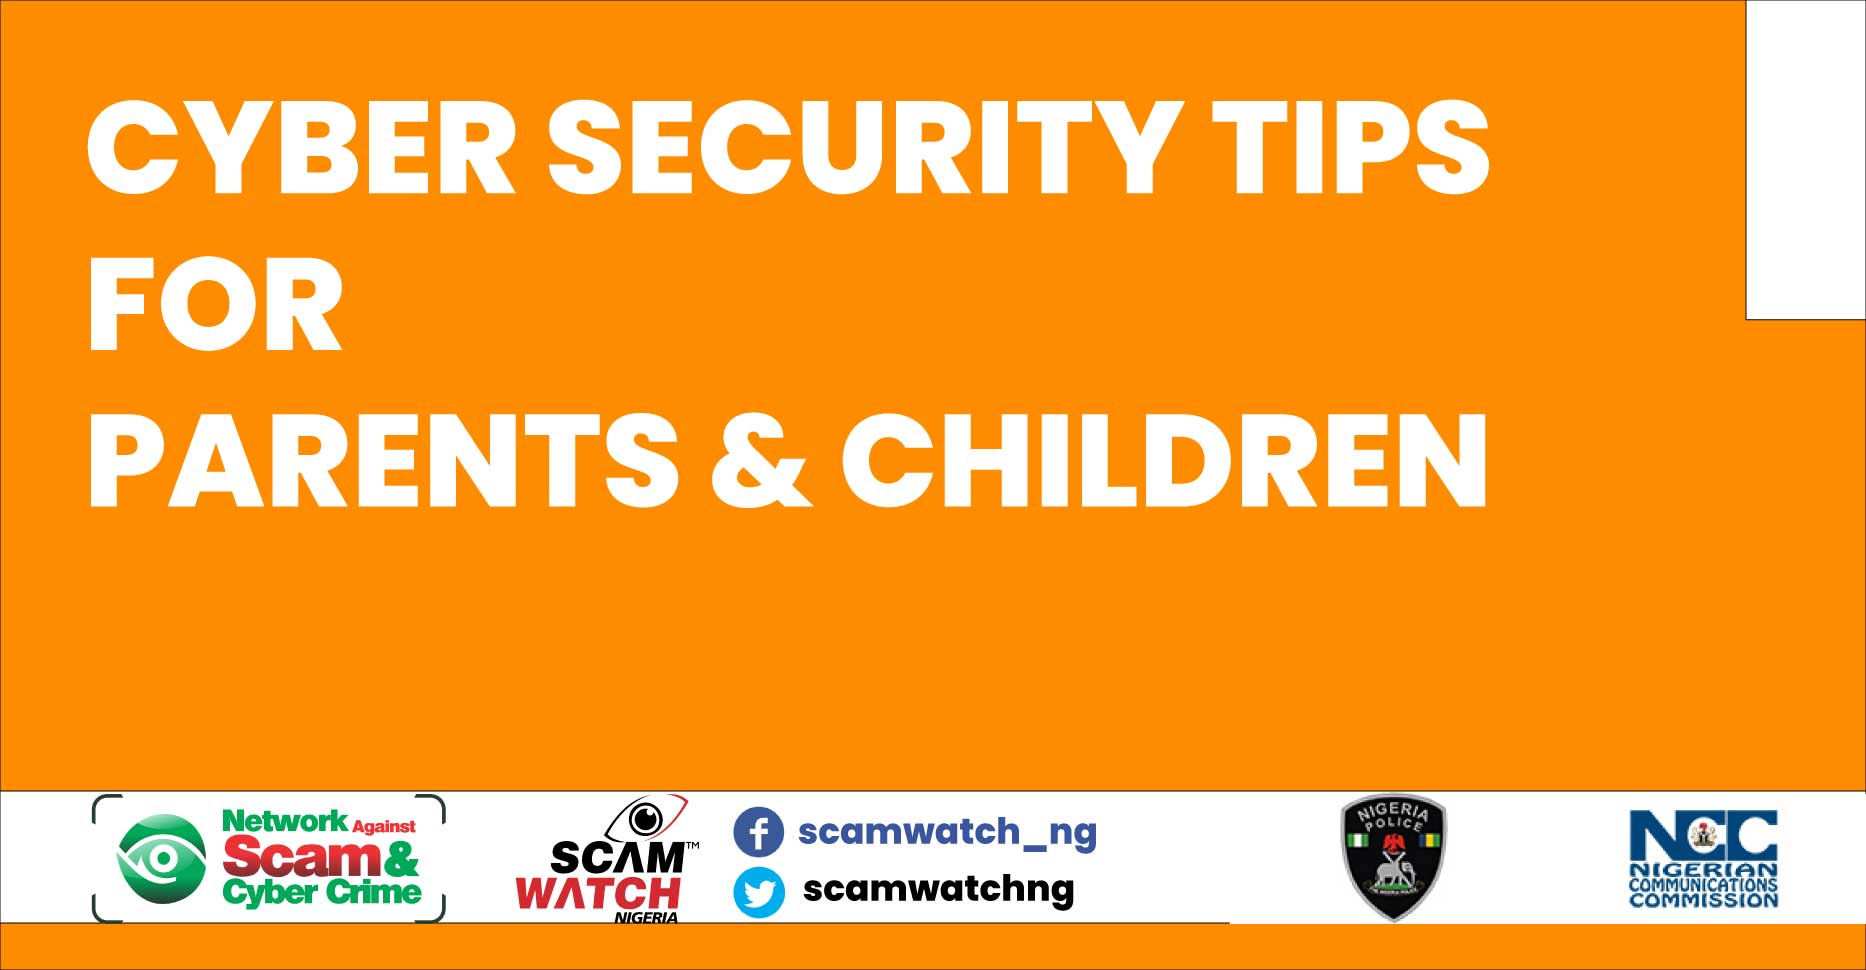 Cybersecurity awareness tips for parents & children